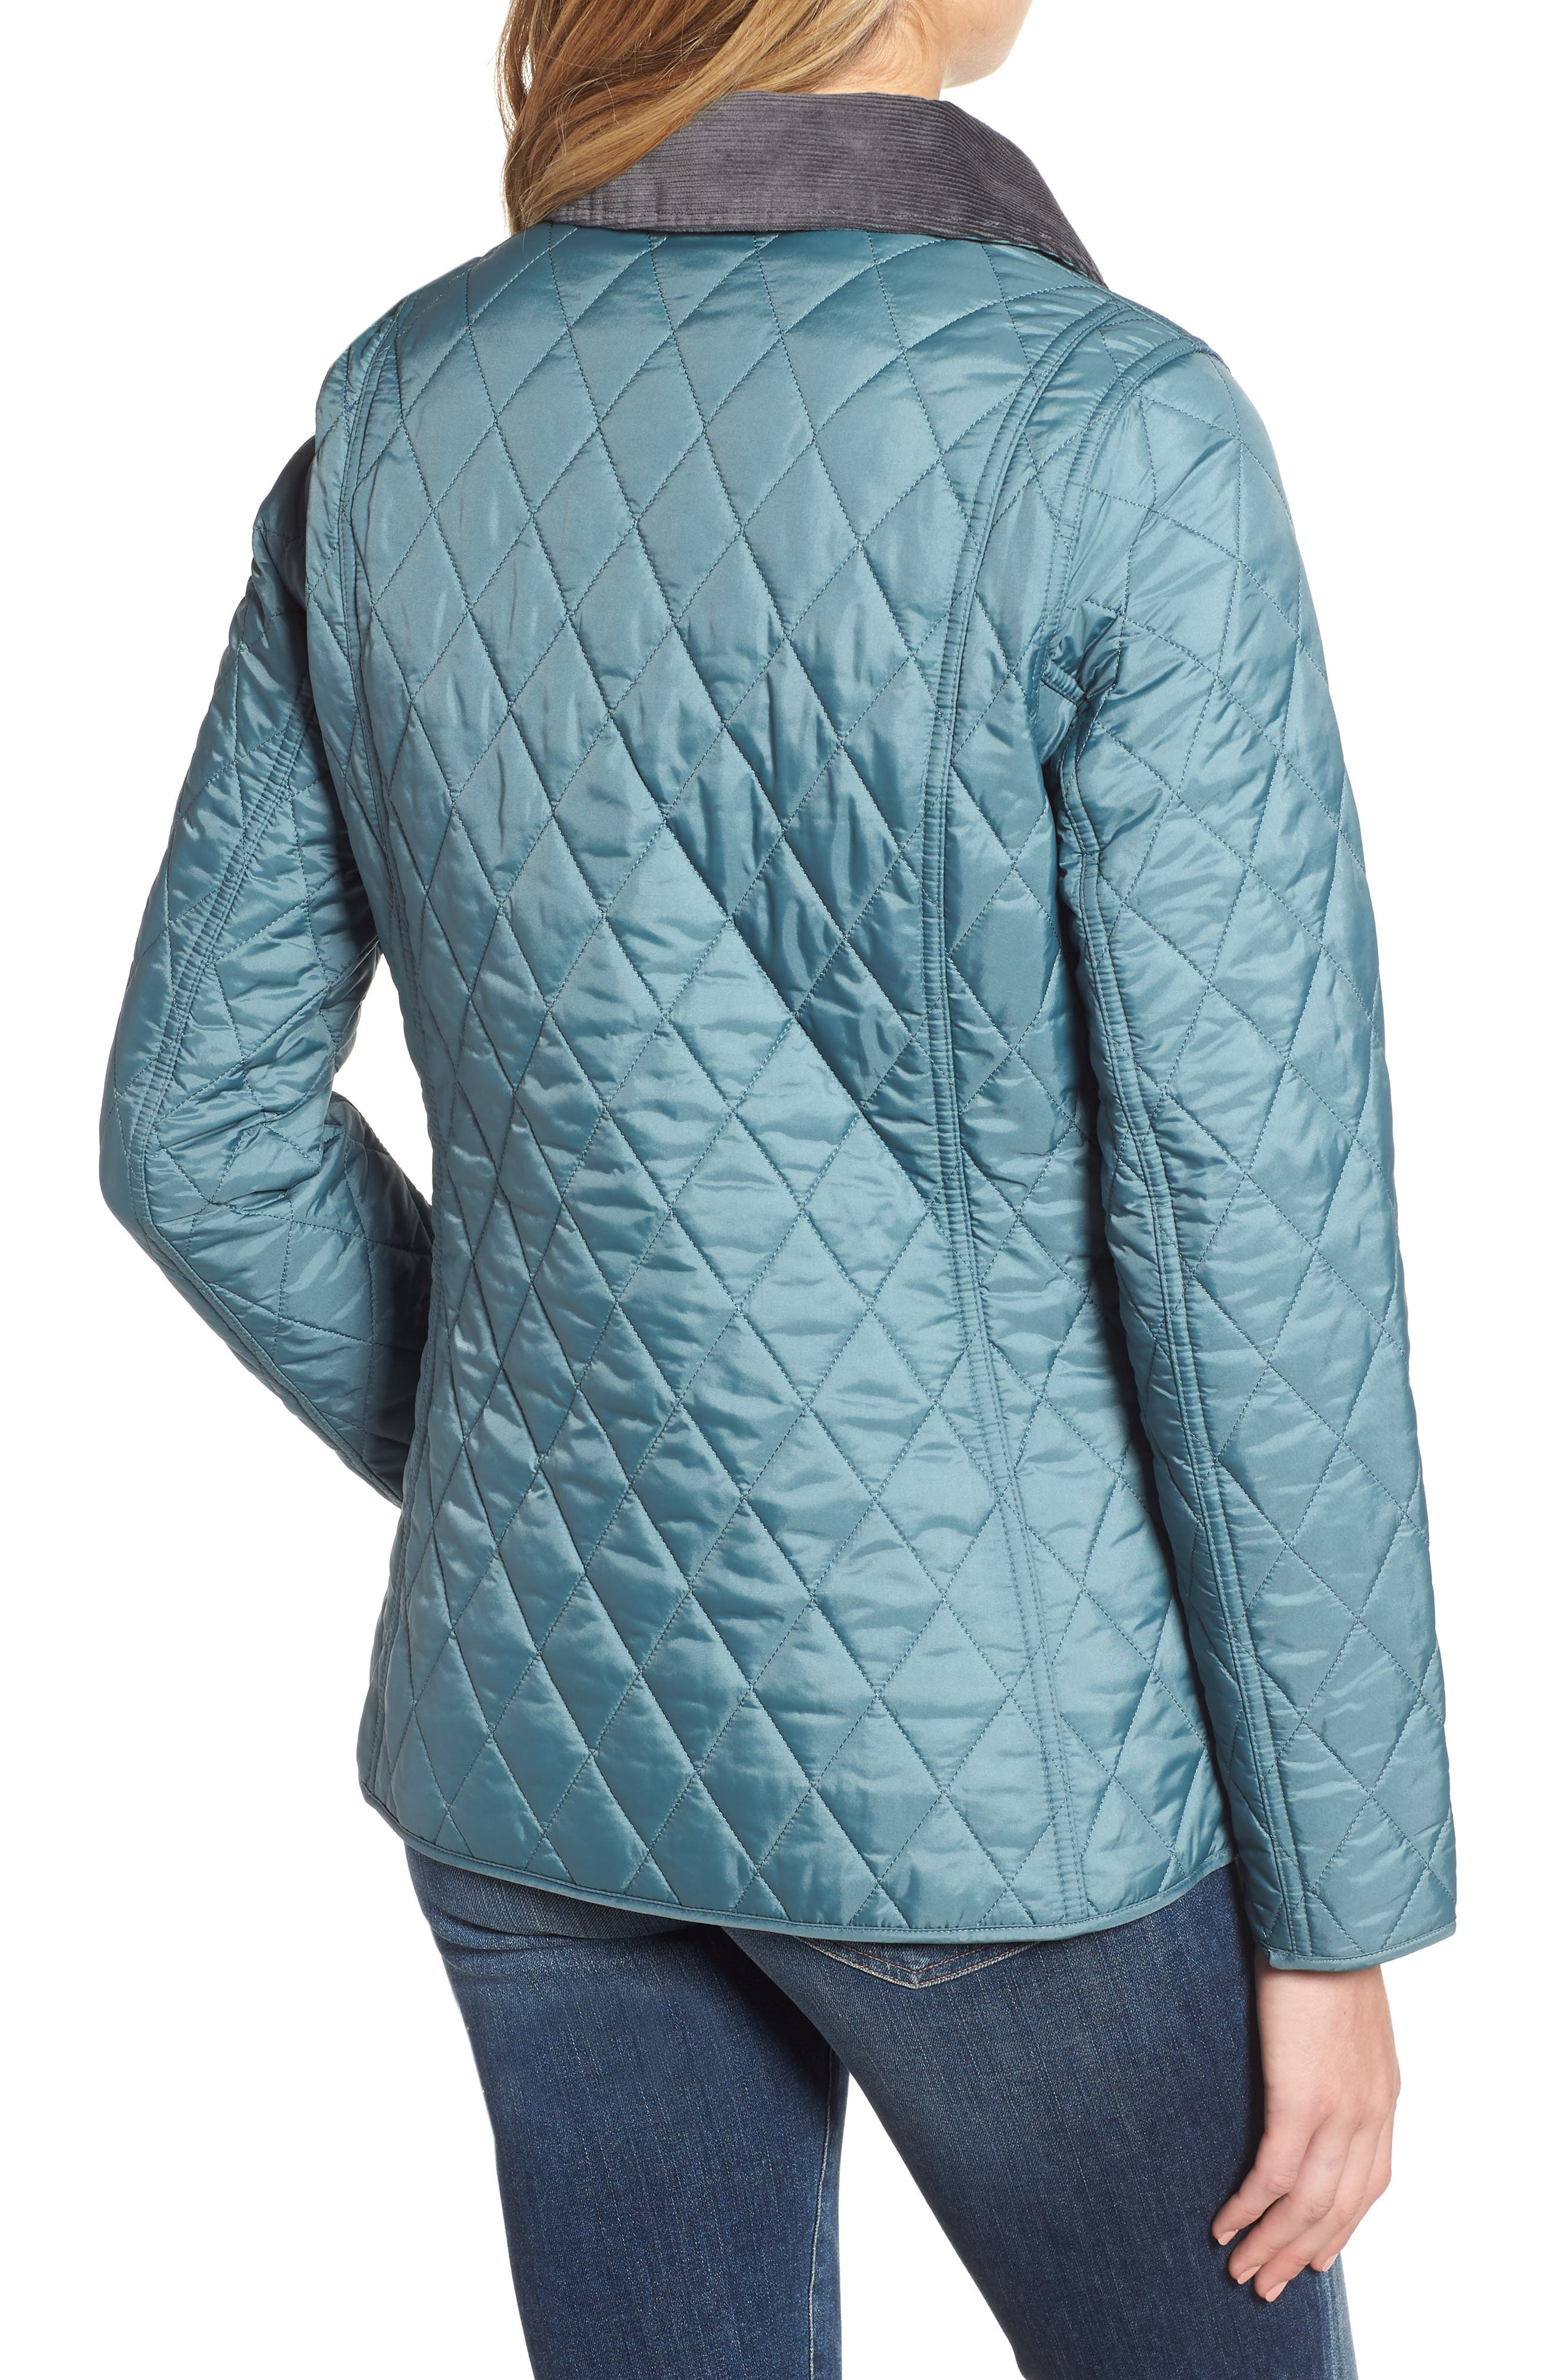 Annandale Quilted Jacket,                             Alternate thumbnail 2, color,                             EUCALYPTUS